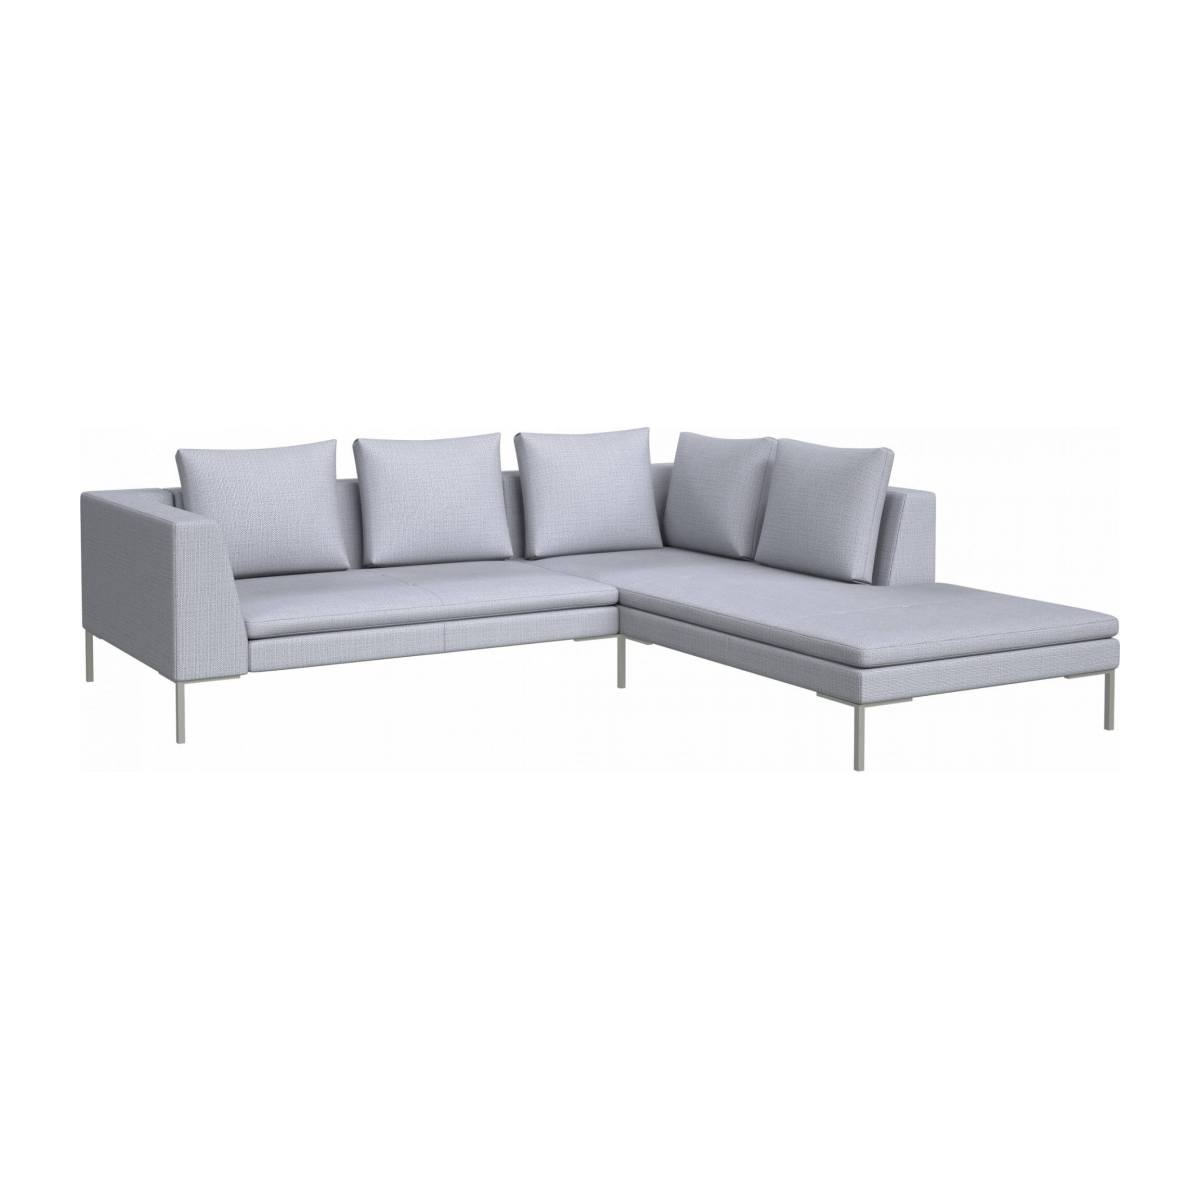 2 seater sofa with chaise longue on the right in Fasoli fabric, grey sky  n°2